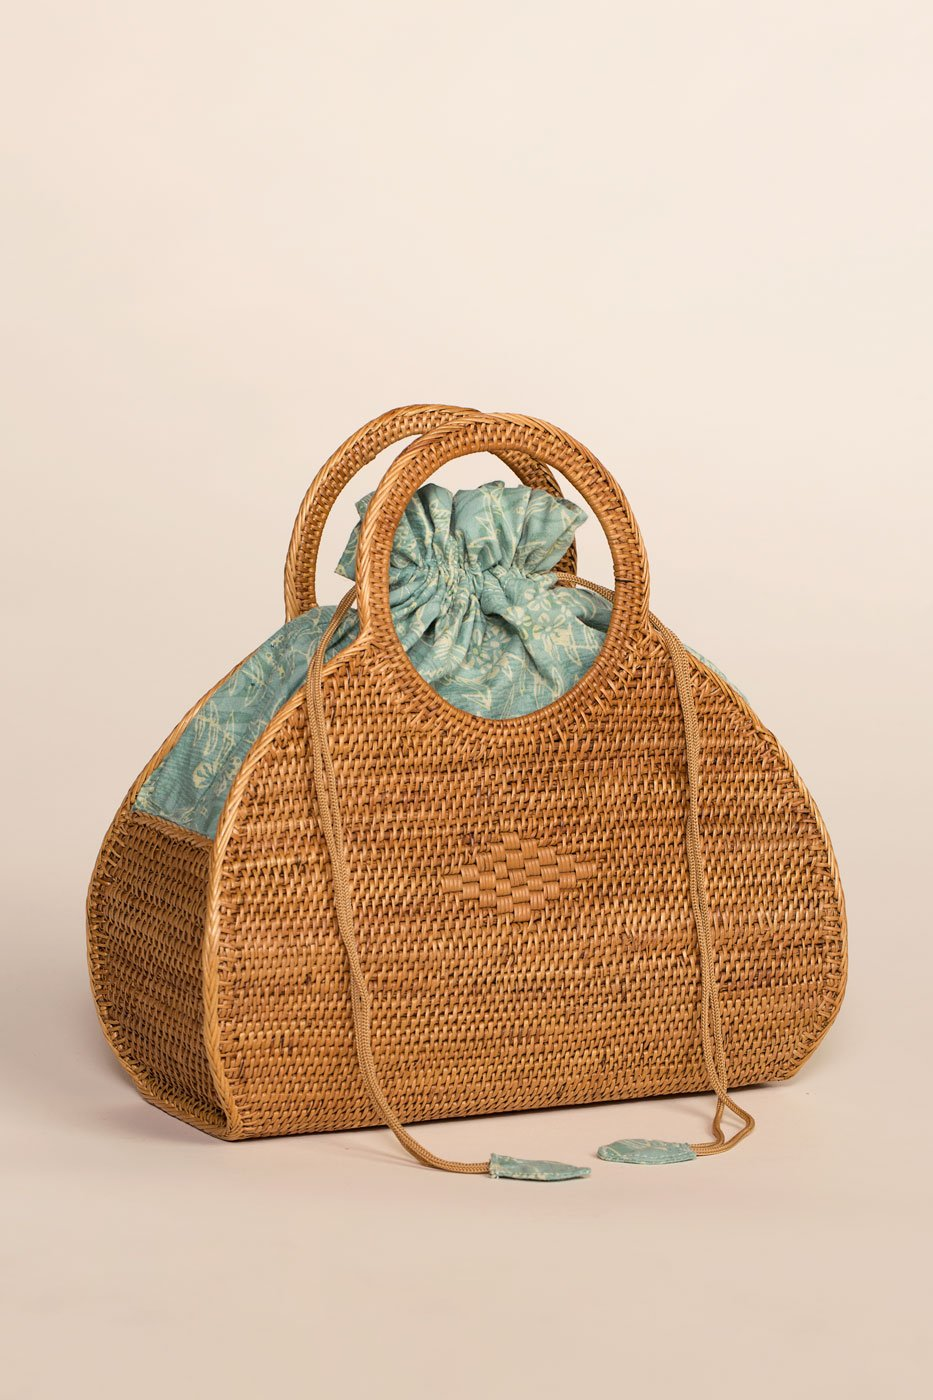 Accessories - Bali Straw Handbag